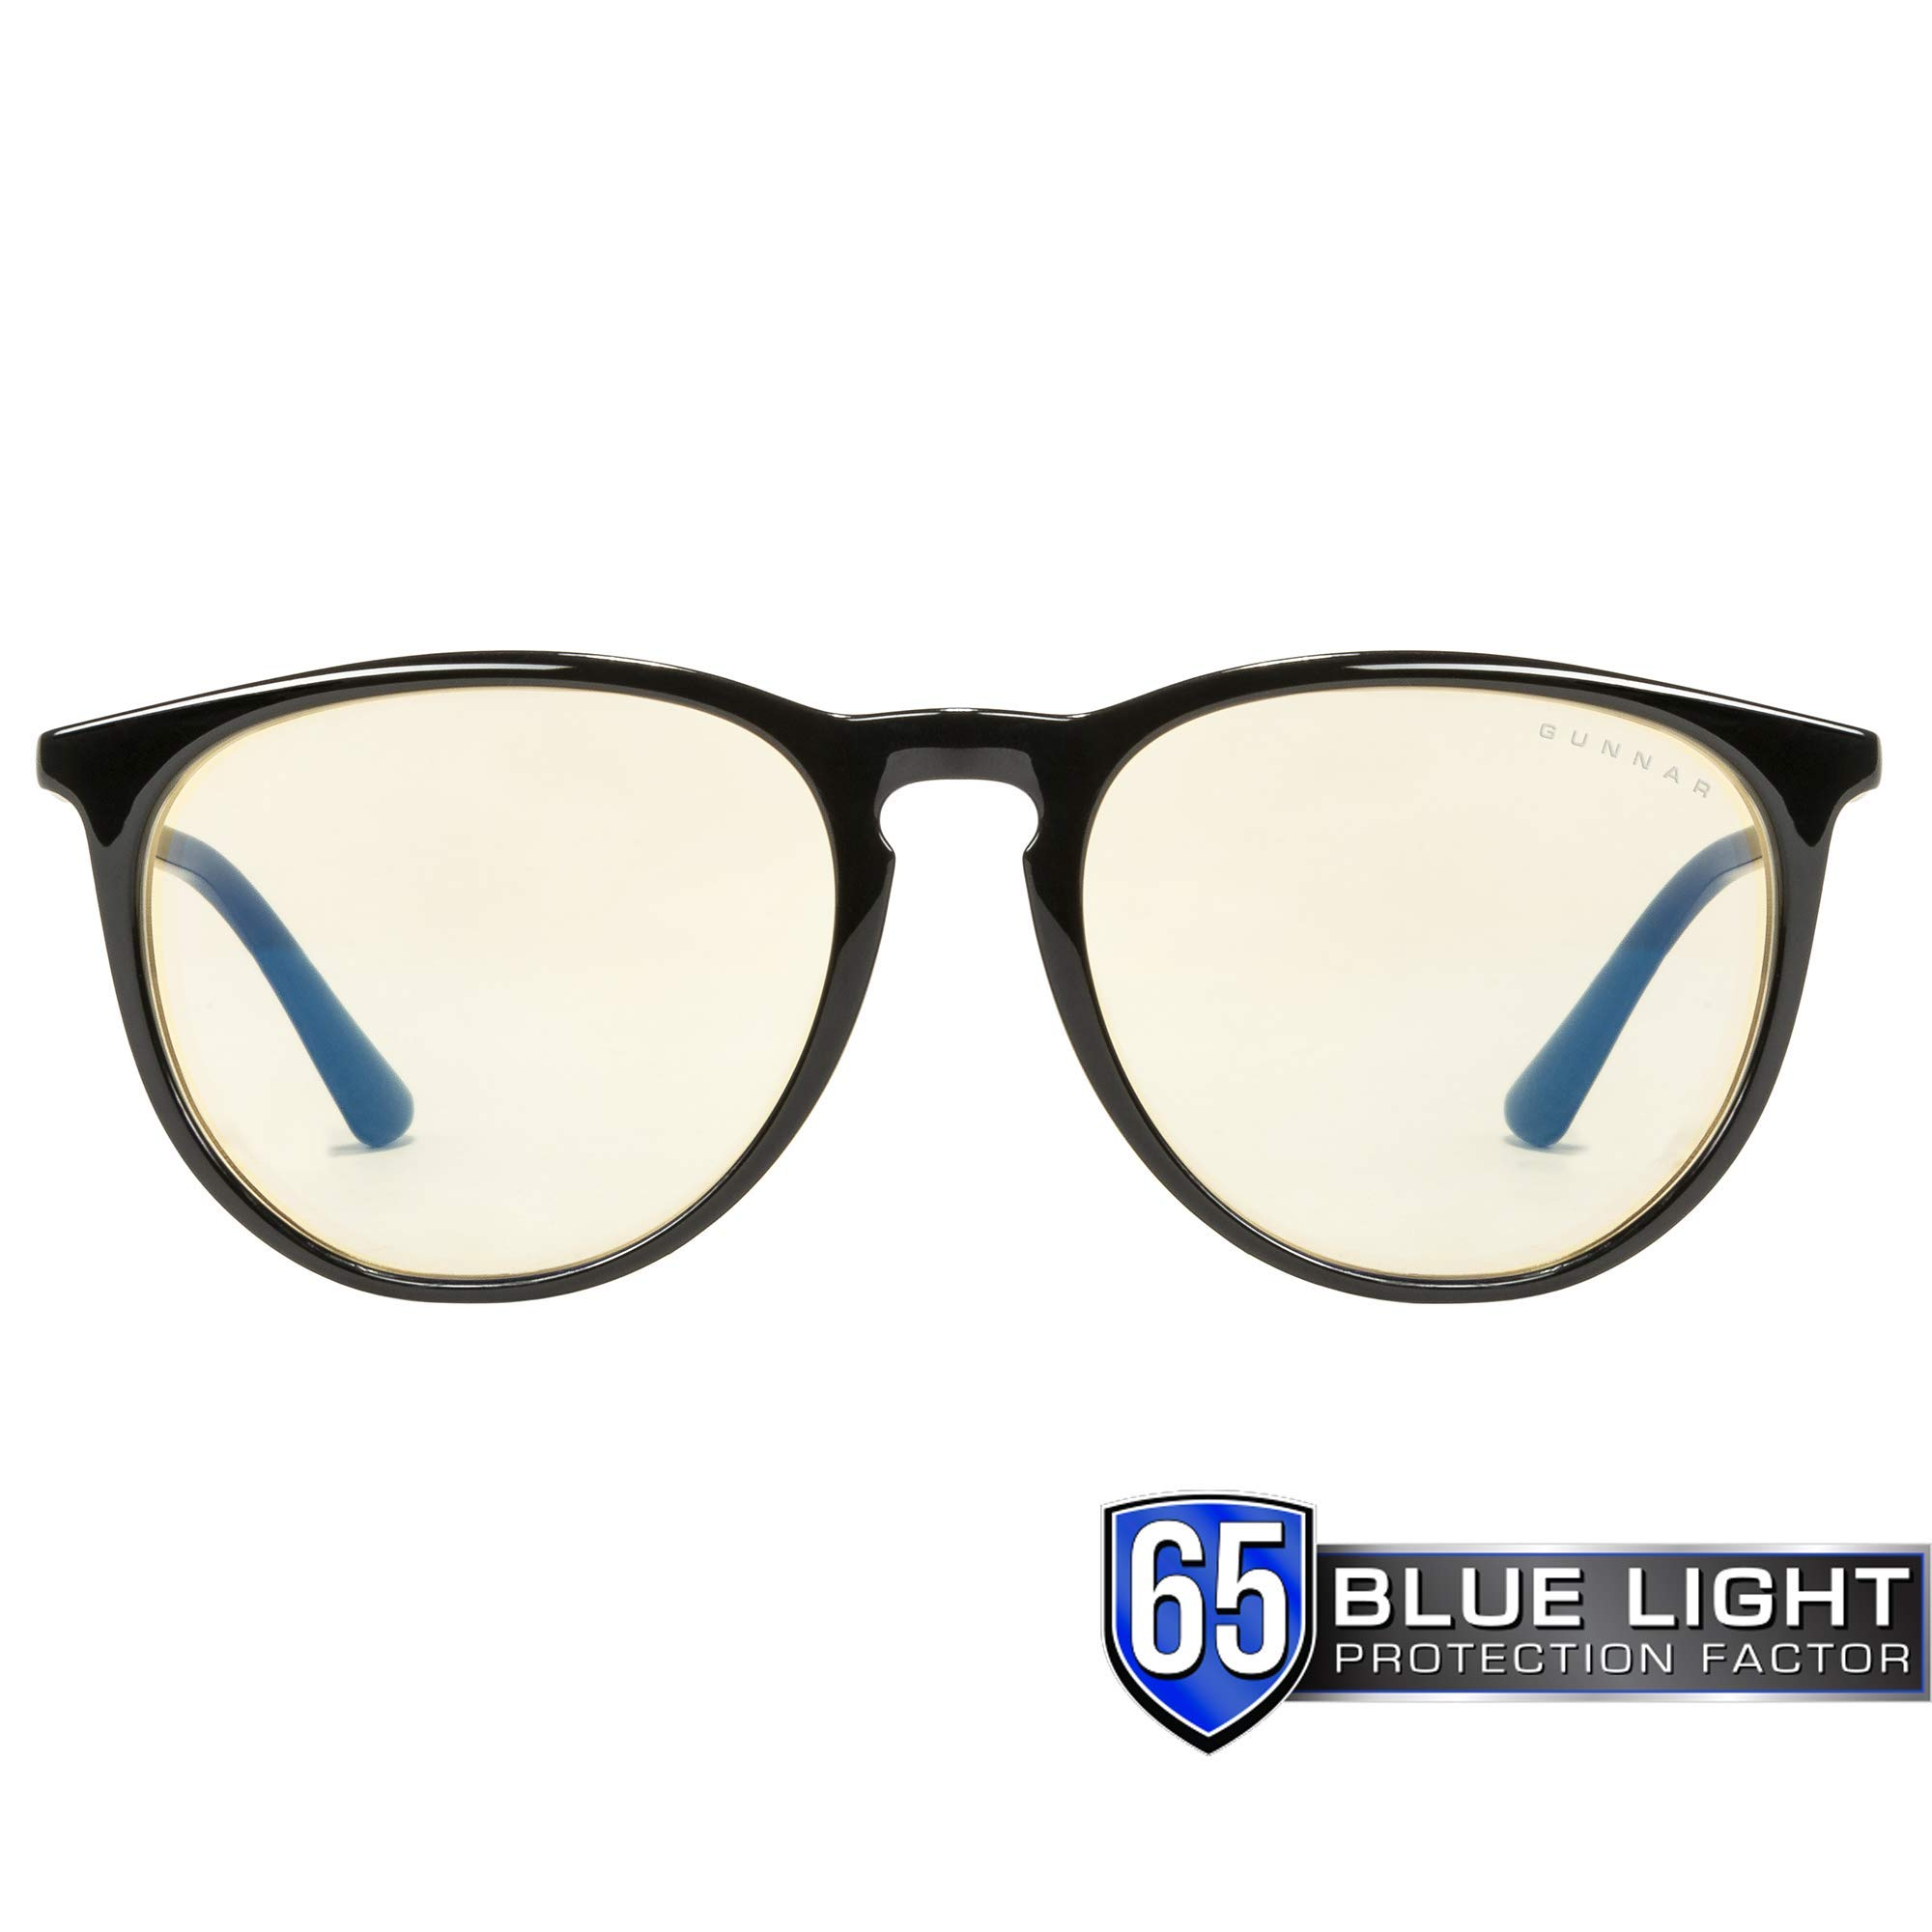 Gunnar Optiks MEN-00101 Gaming and Computer Eyewear/Menlo - Patented Lens, Reduce Digital Eye Strain, Block 65% of Harmful Blue Light - Amber Lens - PC/ Mac/ Linux